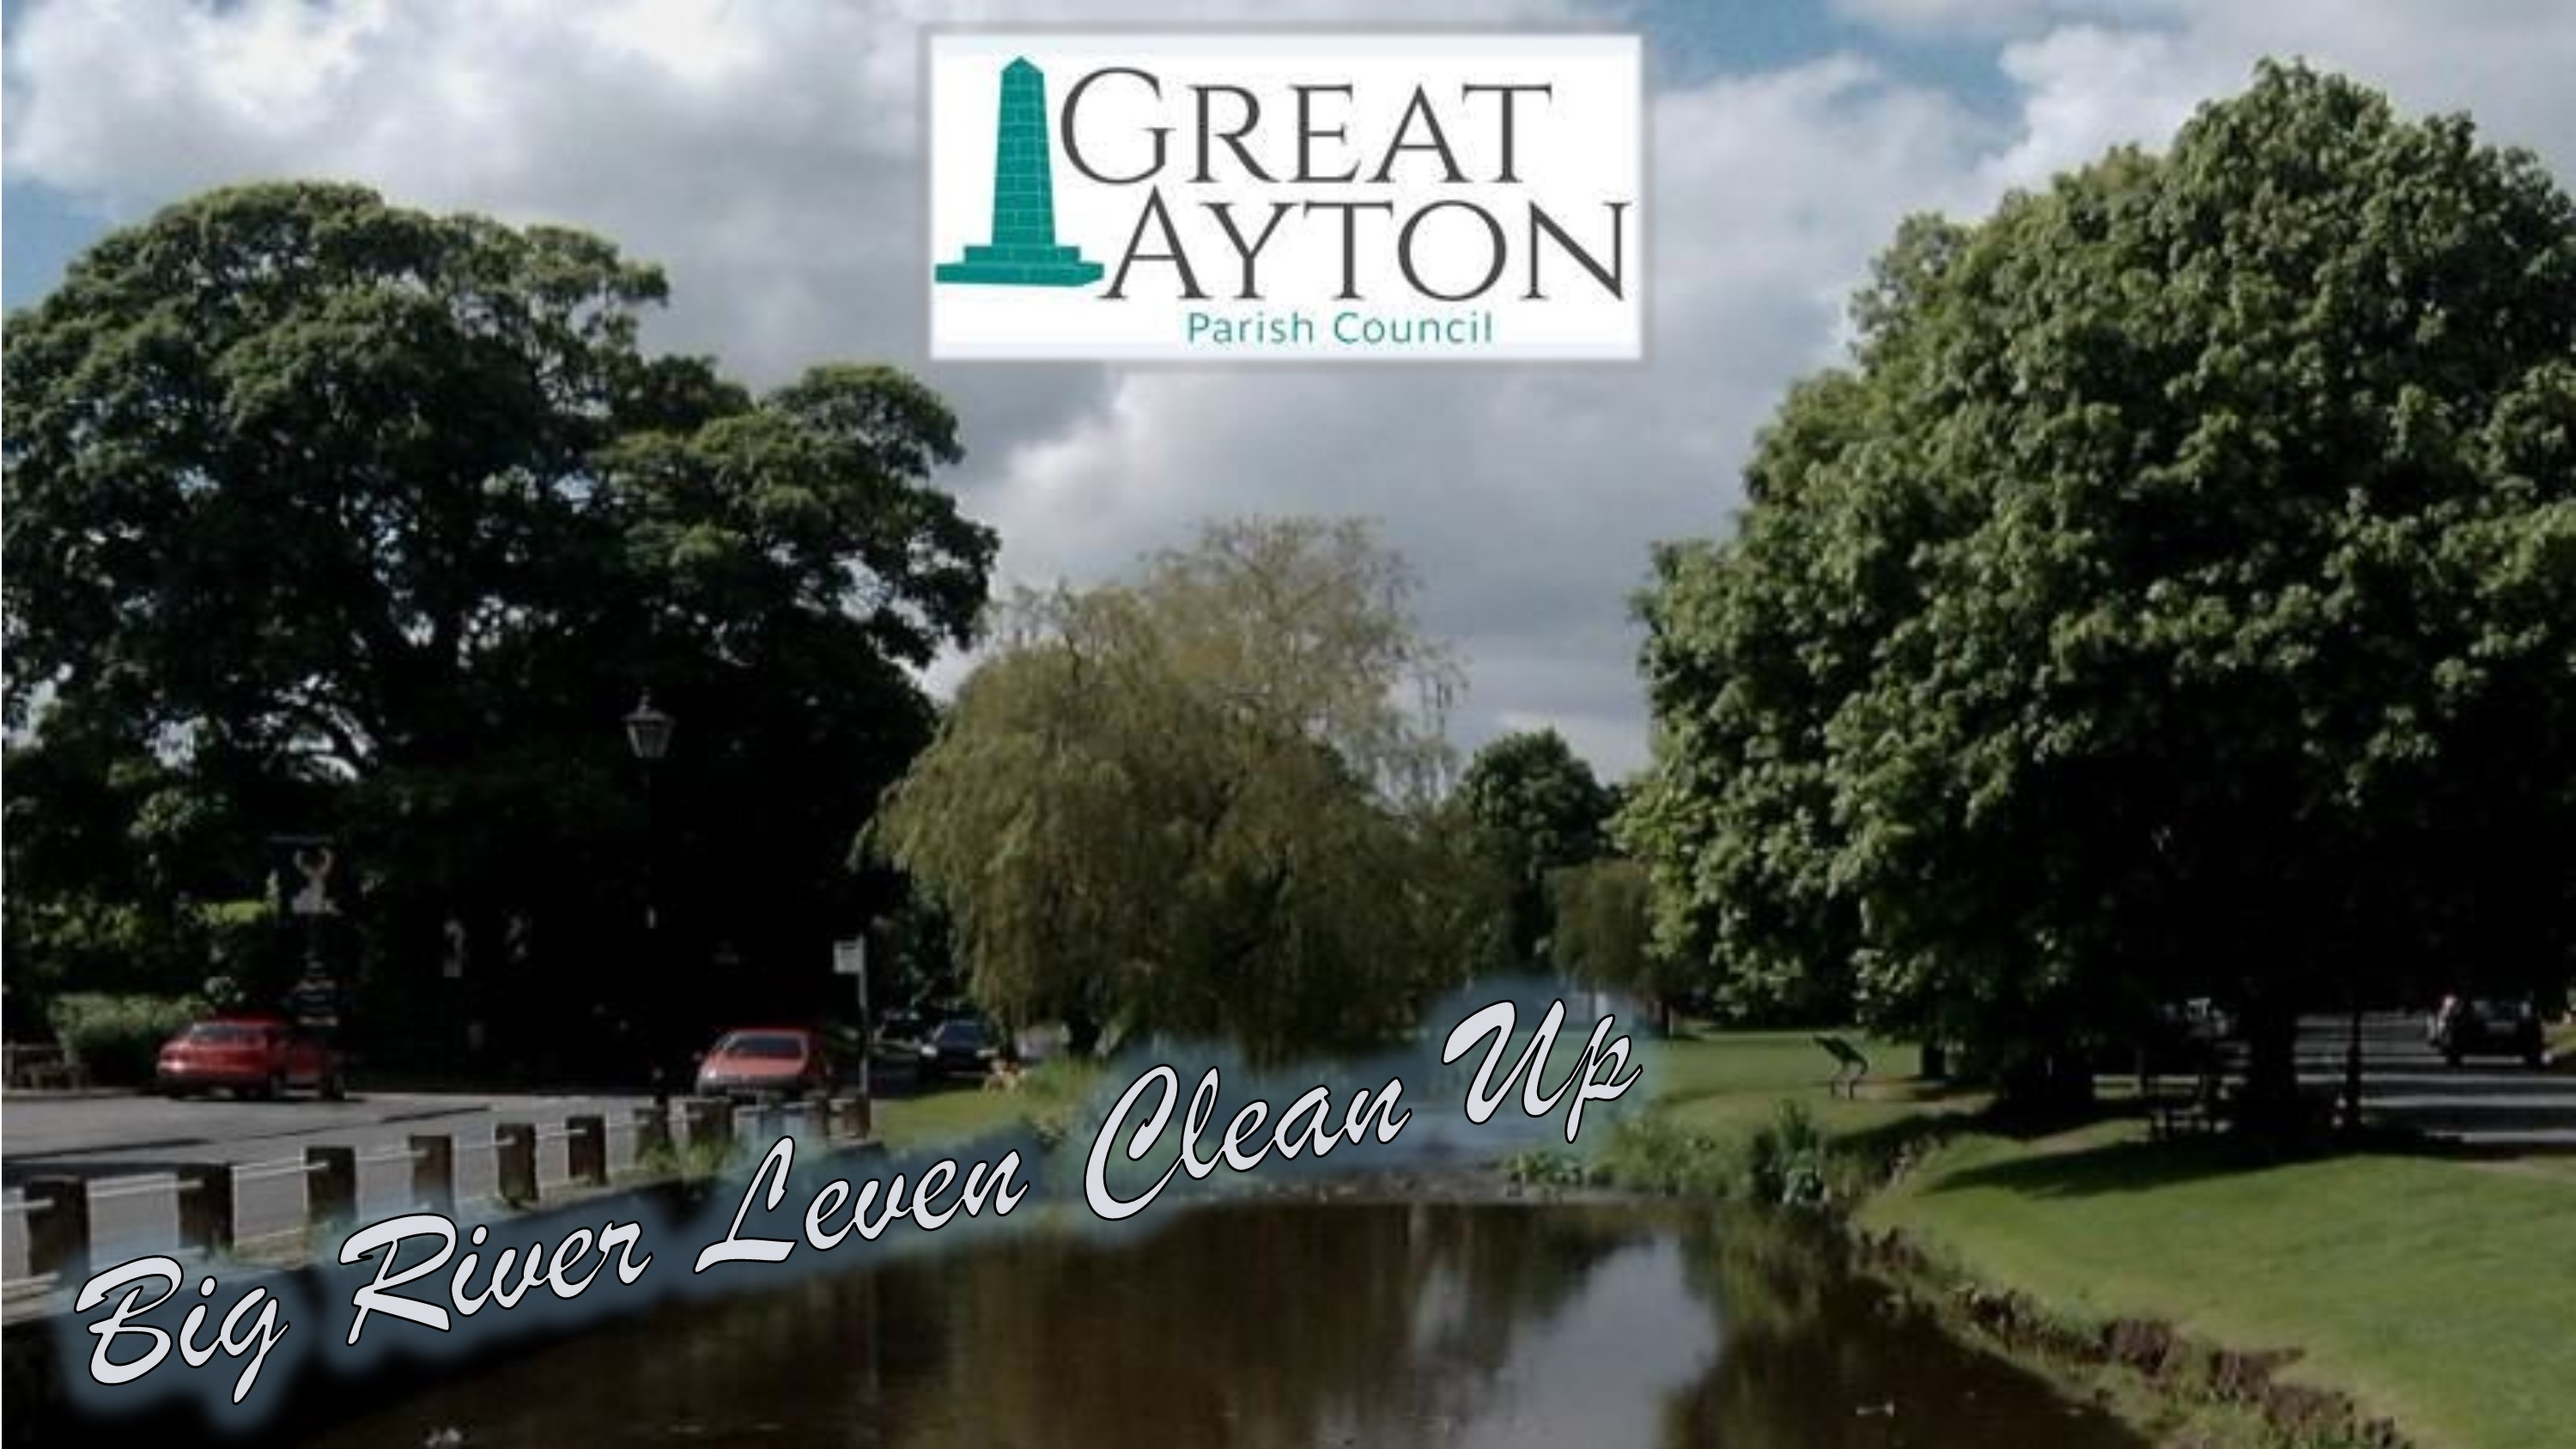 great-ayton-the-big-river-leven-clean-up